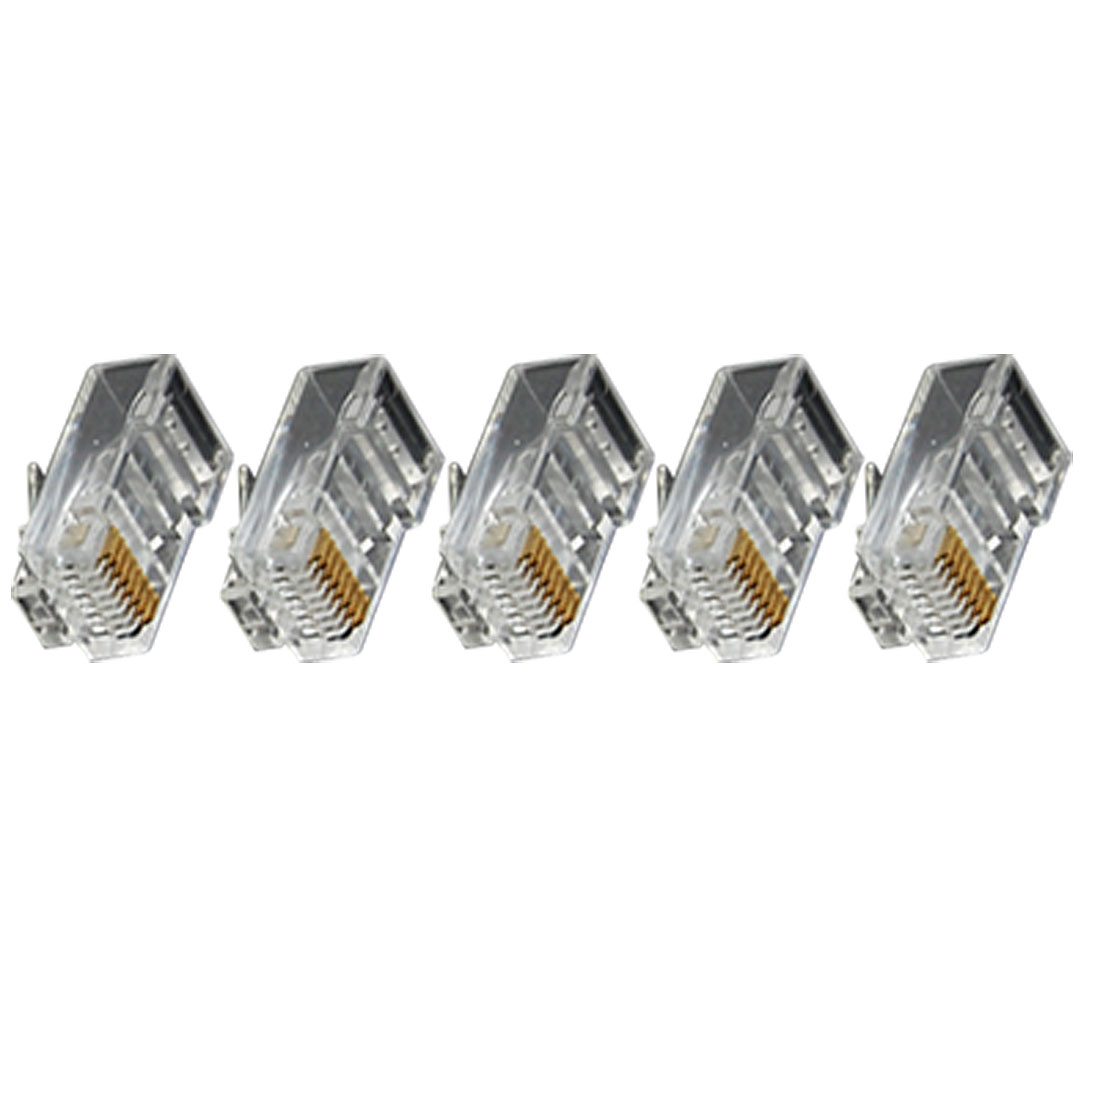 RJ-45 CAT5 Polycarbonate Modular Interface Network Connector Clear 50 PCS